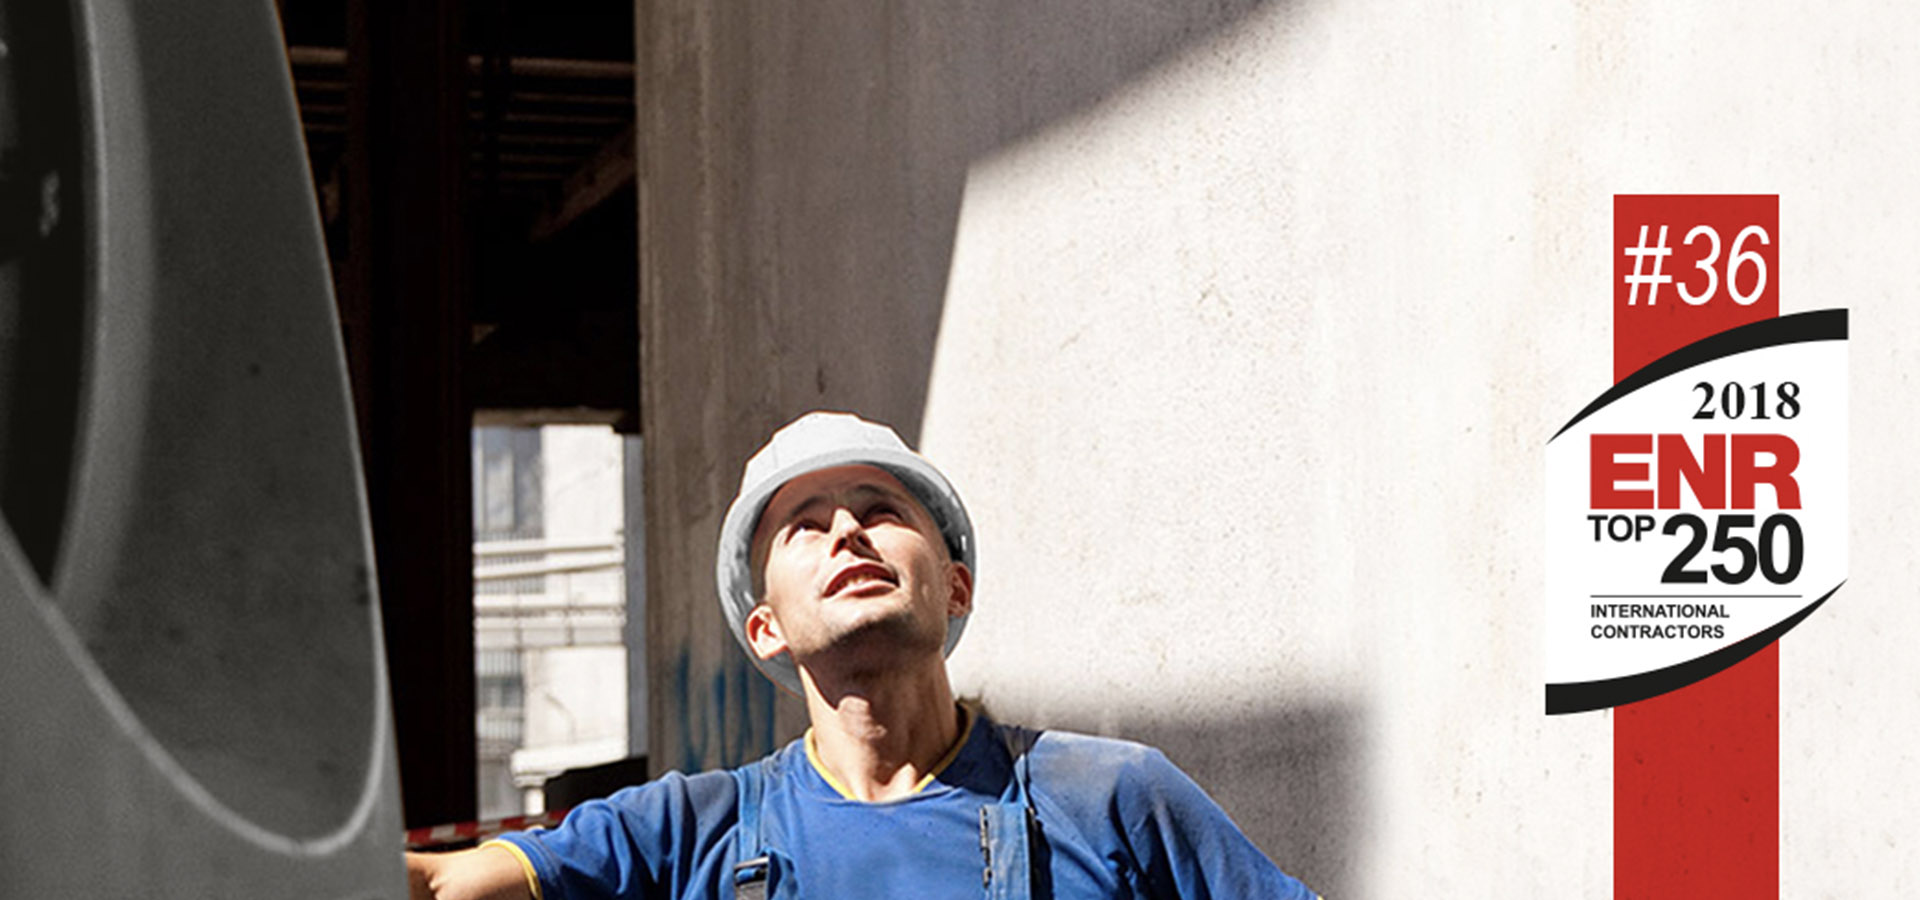 Renaissance Construction is the 36th largest contracting